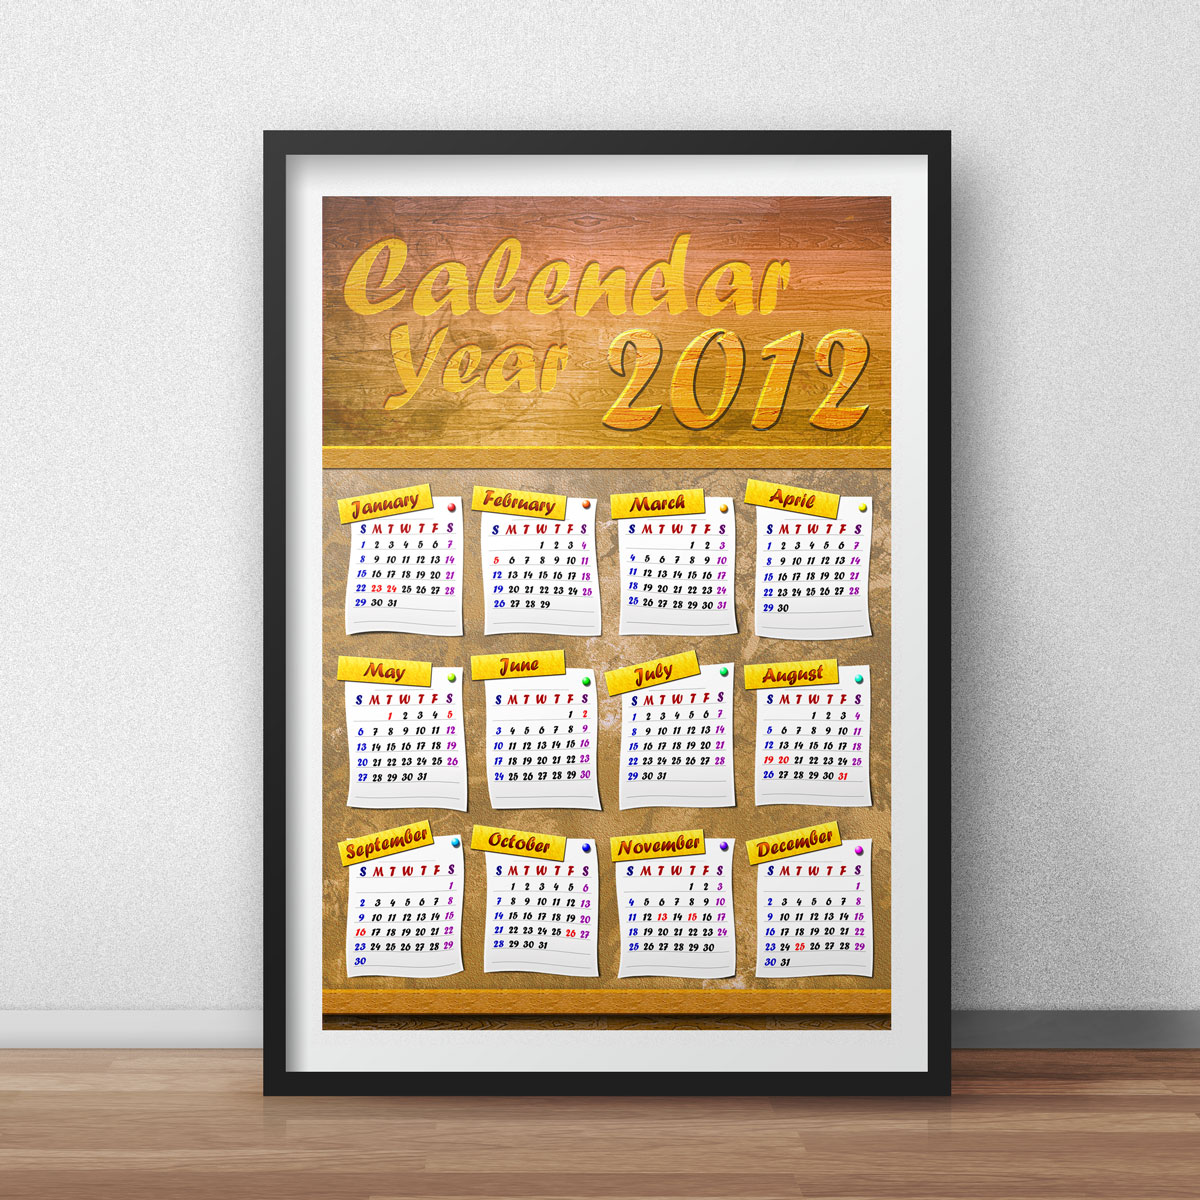 Corkboard Calendar Year 2012 Design 02